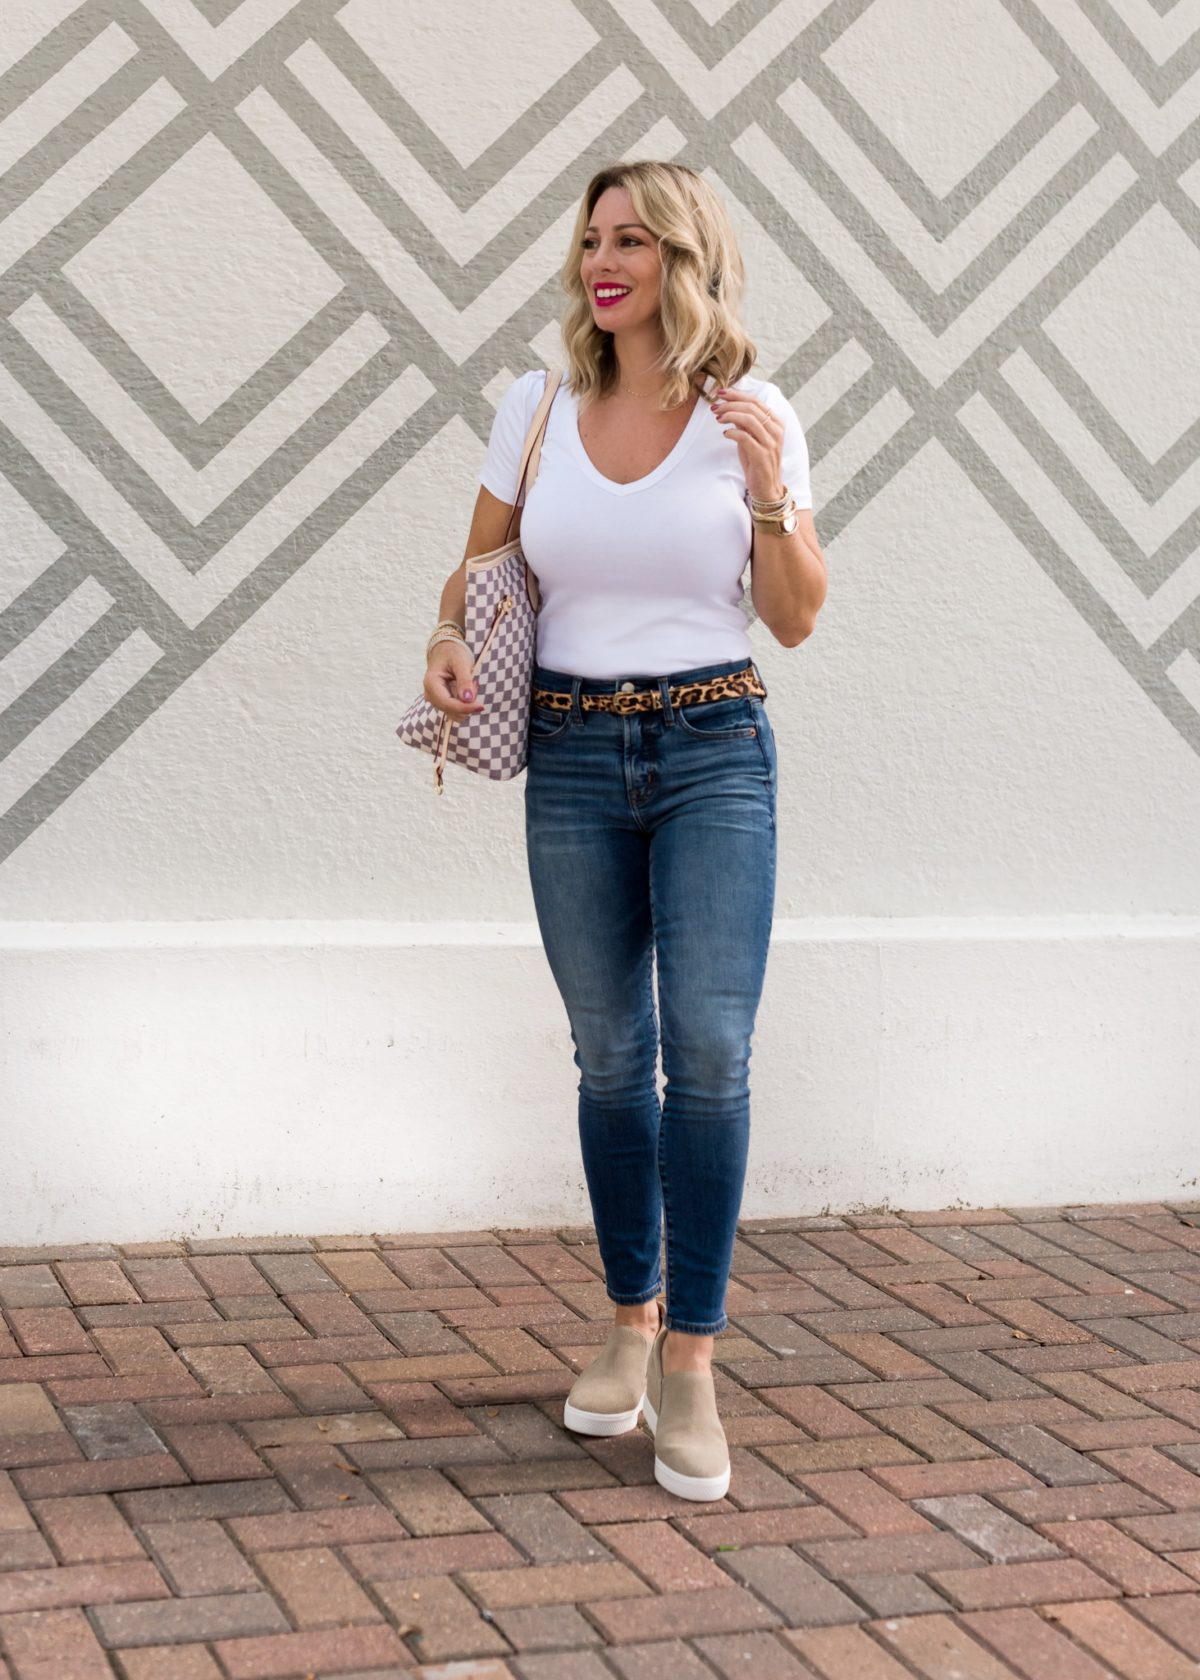 Perfect white t-shirt and jeans with sneakers